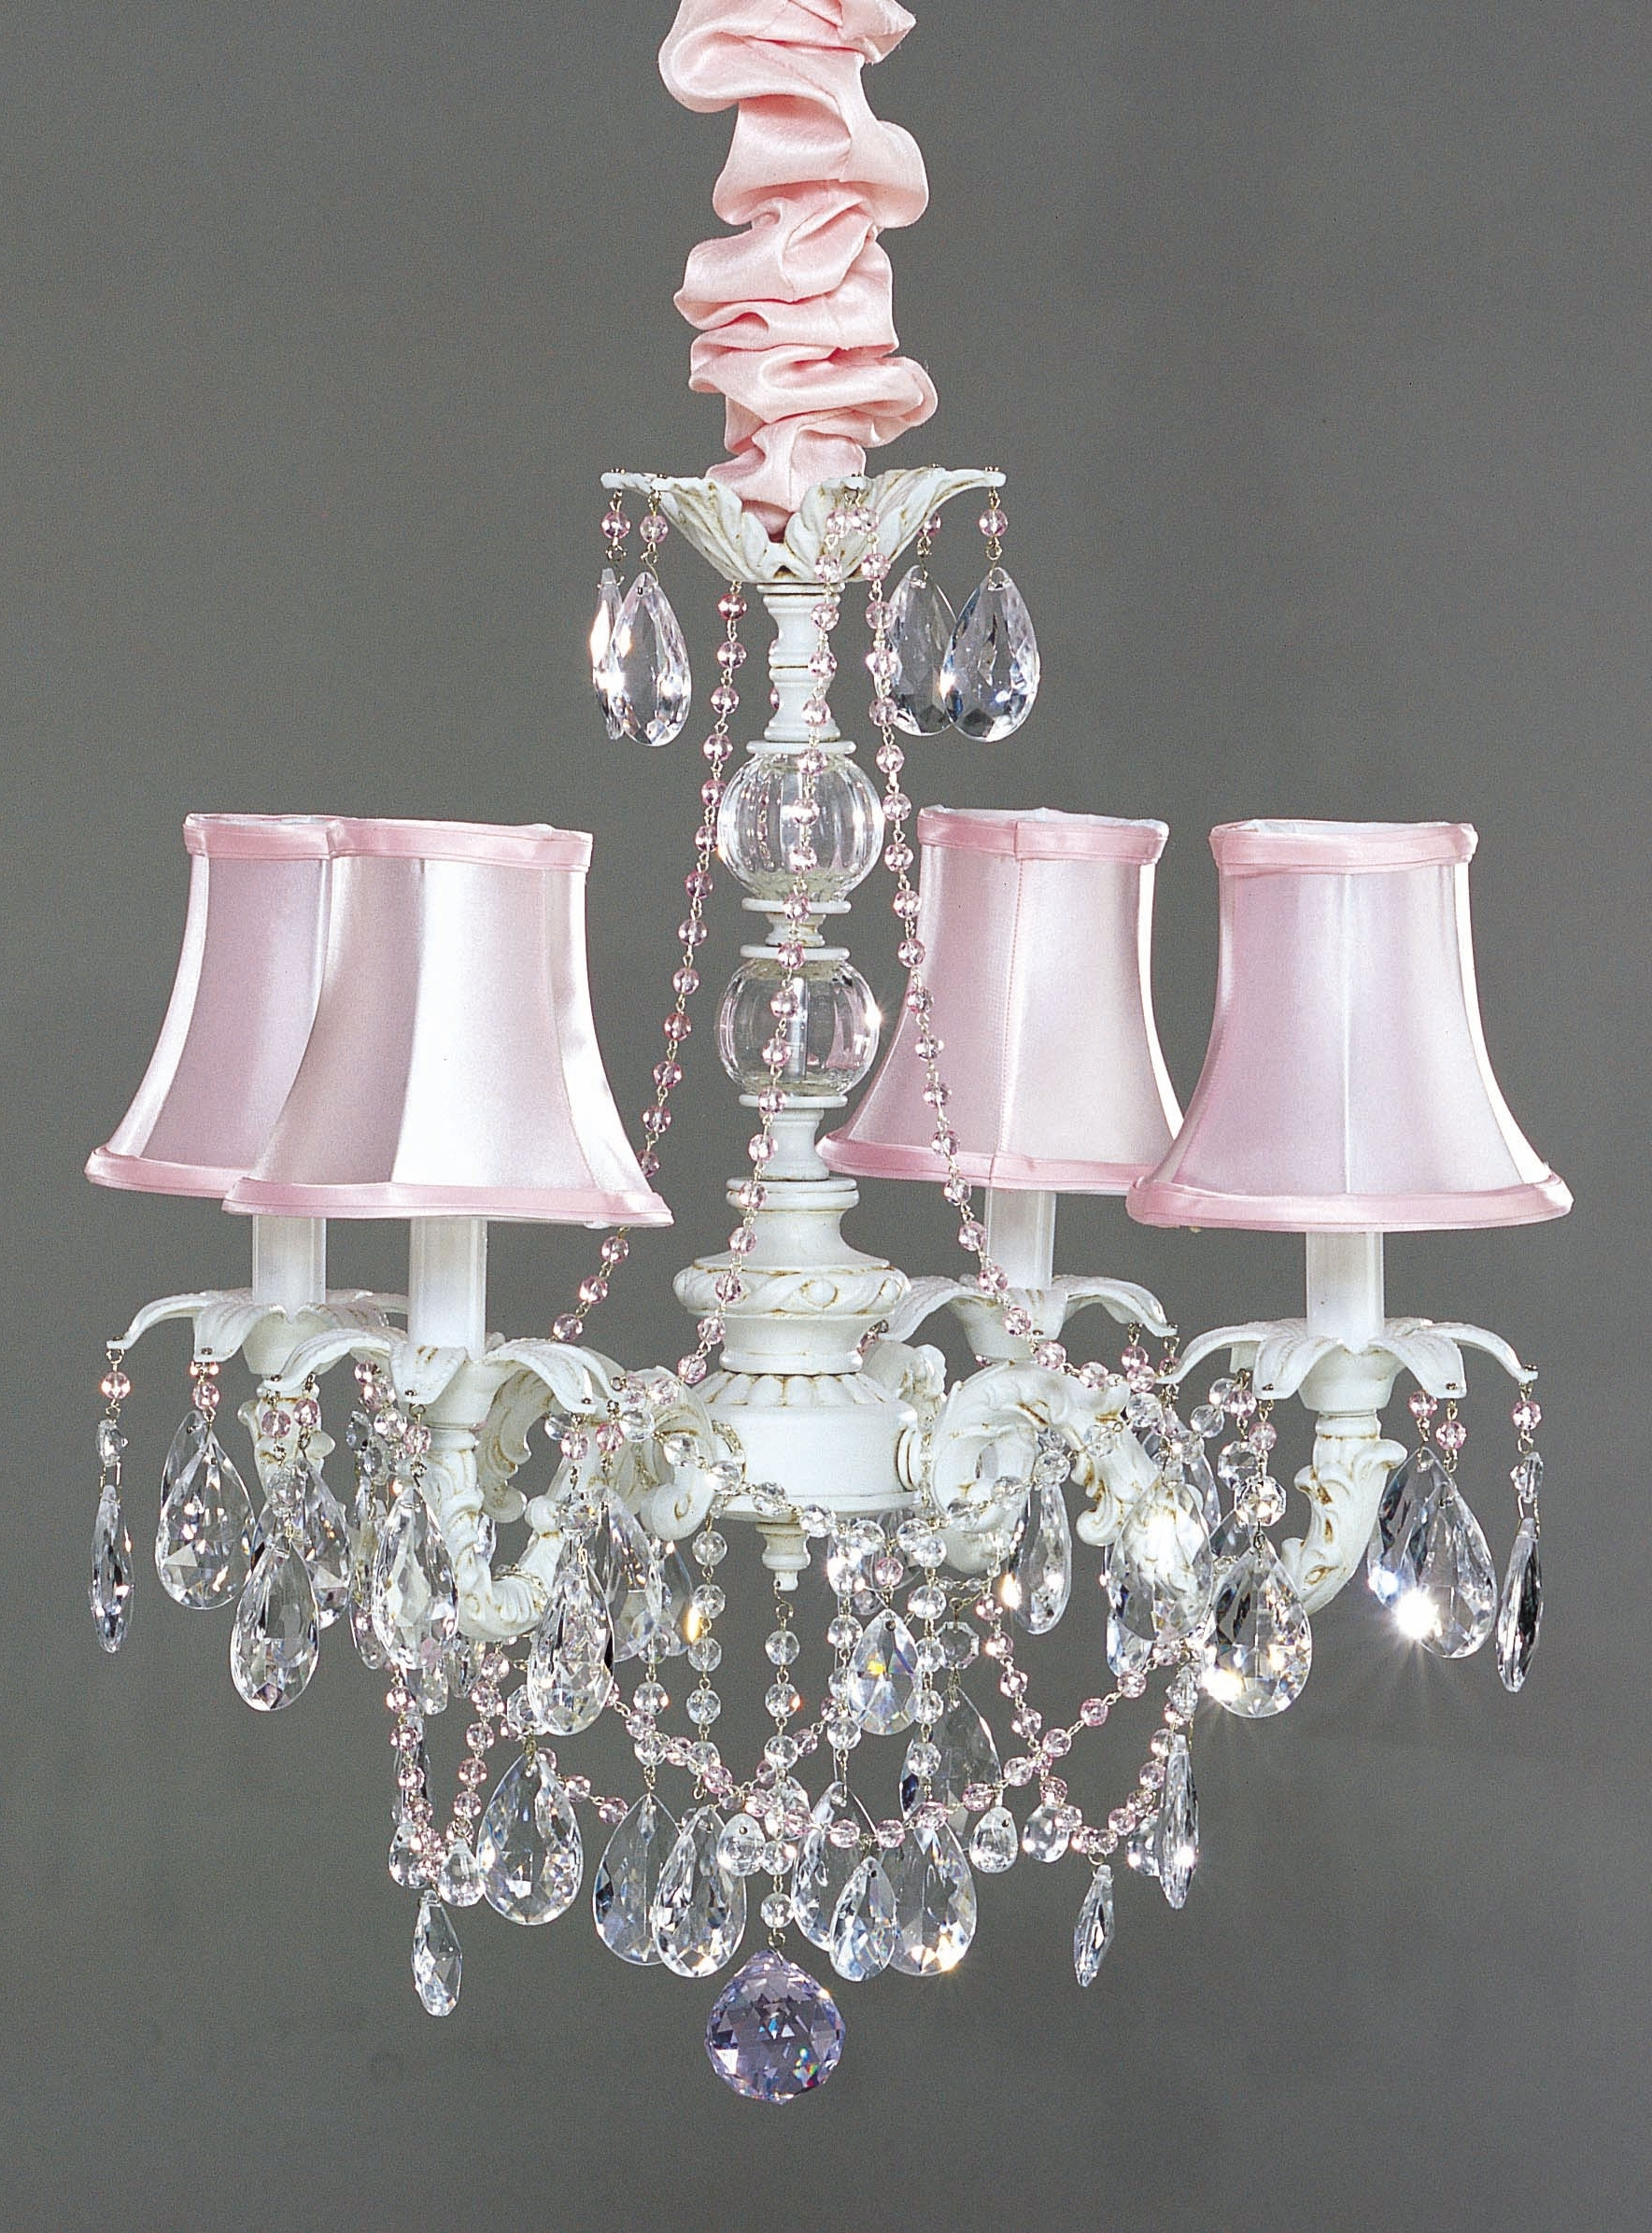 Shabby Chic Chandeliers Amazinghabby Table Lamp Lighting Crystal Inside Preferred Shabby Chic Chandeliers (View 16 of 20)